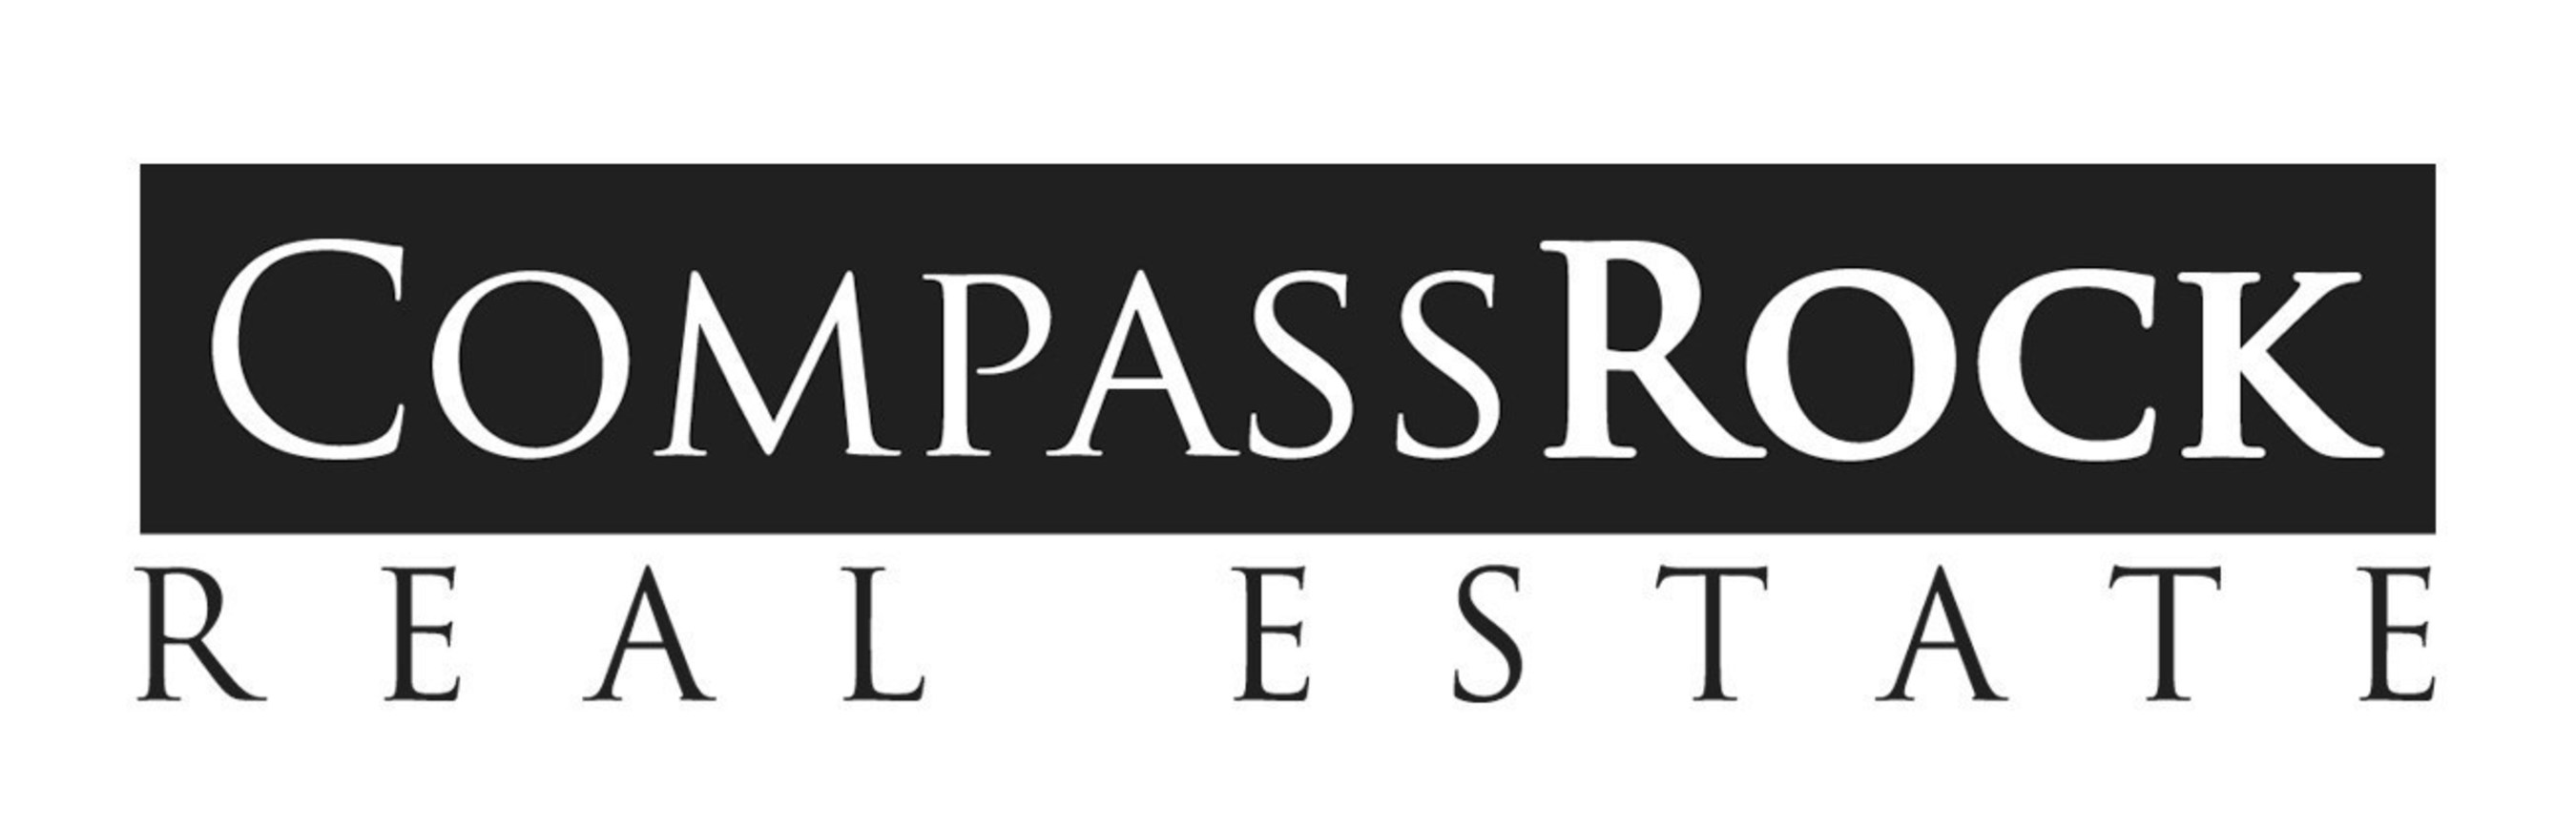 CompassRock Real Estate LLC Chosen to Manage Two Affordable Buildings at Pacific Park Brooklyn